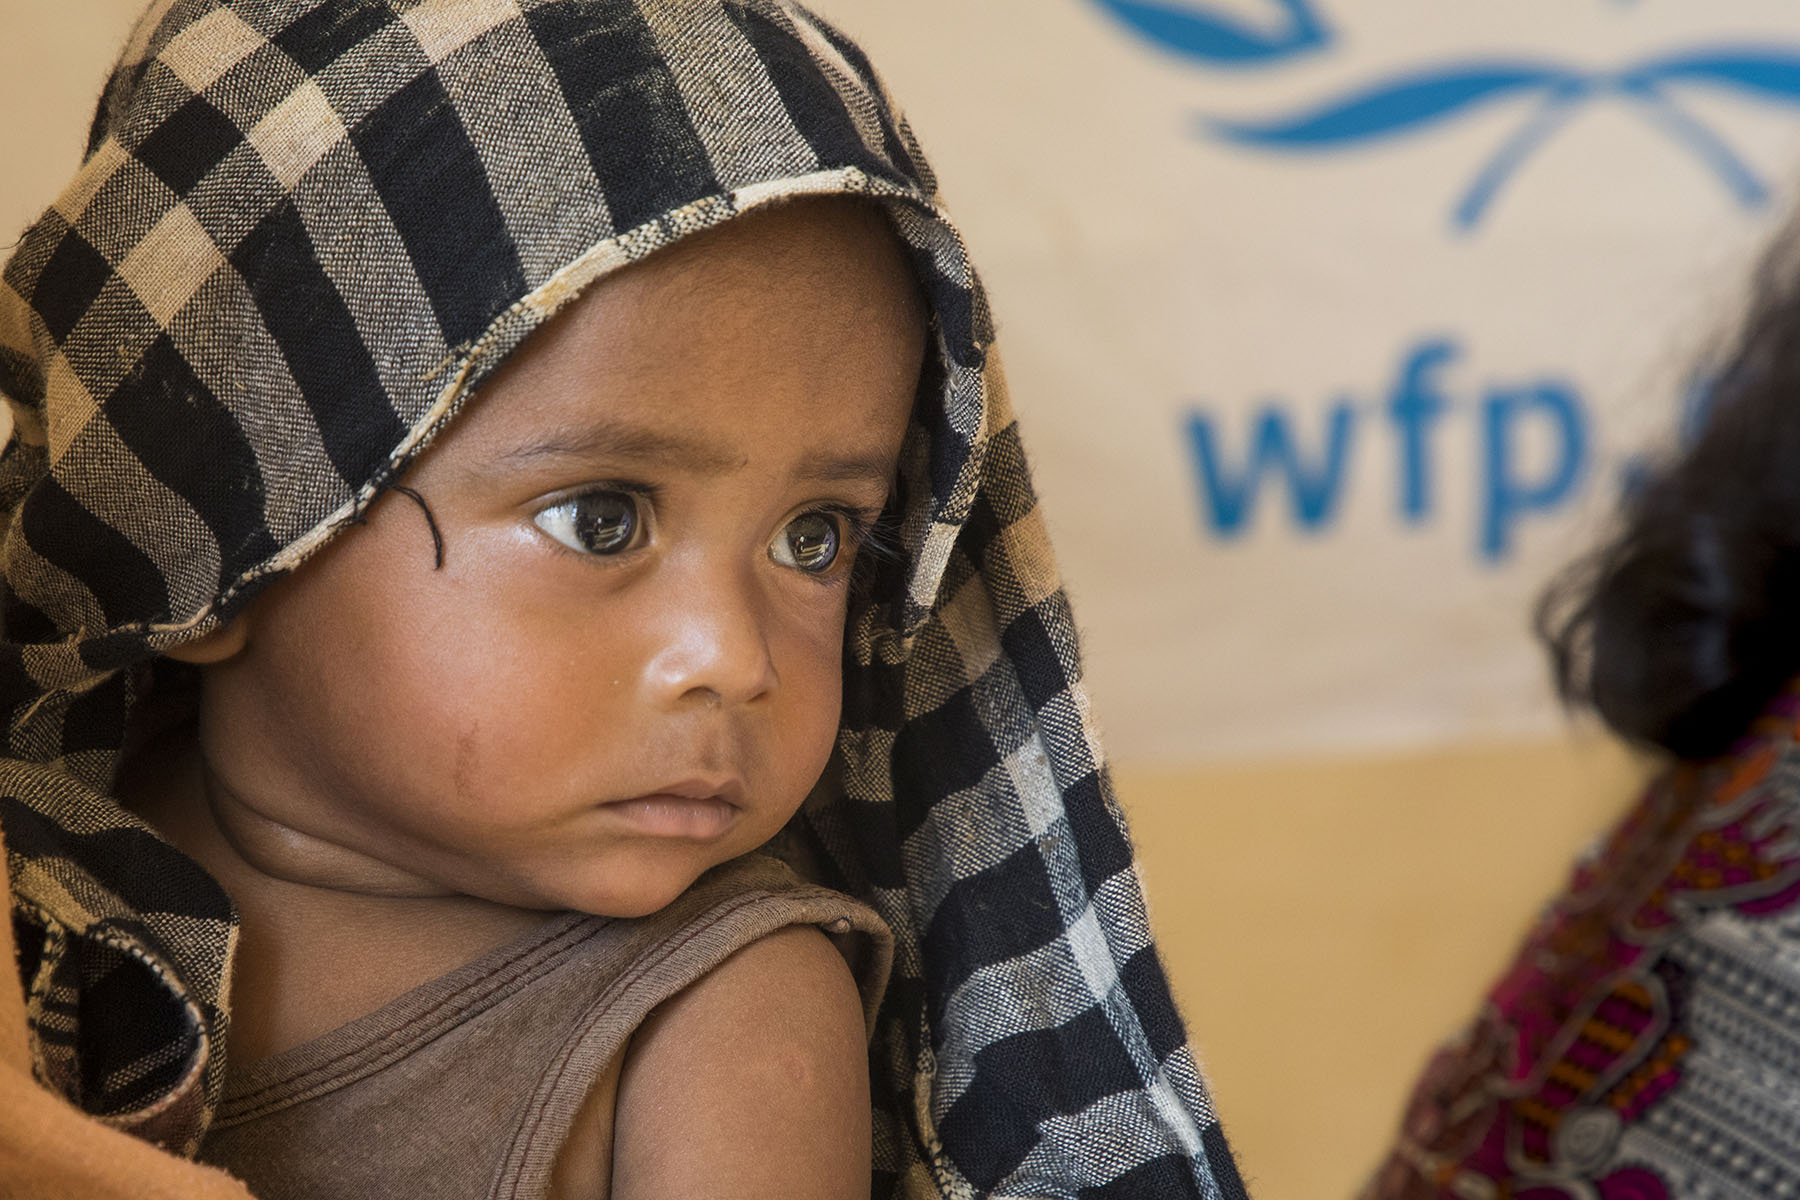 A young child waits at a food distribution site in the Kutupalong camp in Cox's Bazar, Bangladesh.